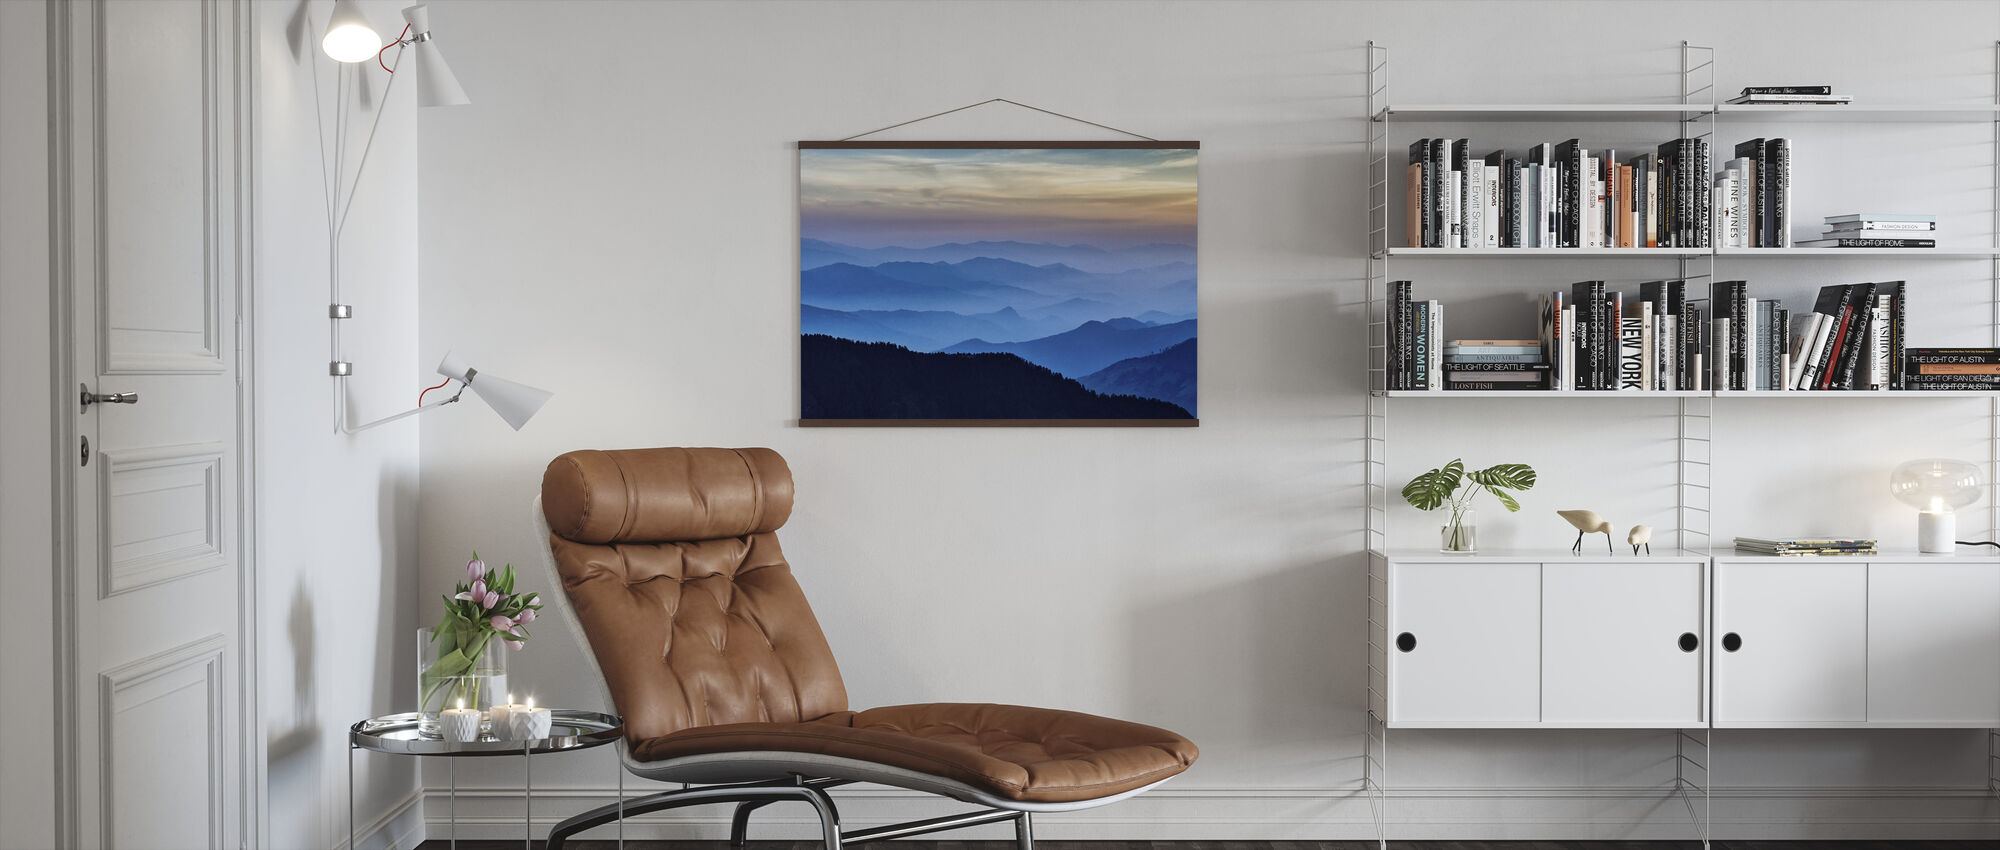 Rhythm of the Mountains - Poster - Living Room